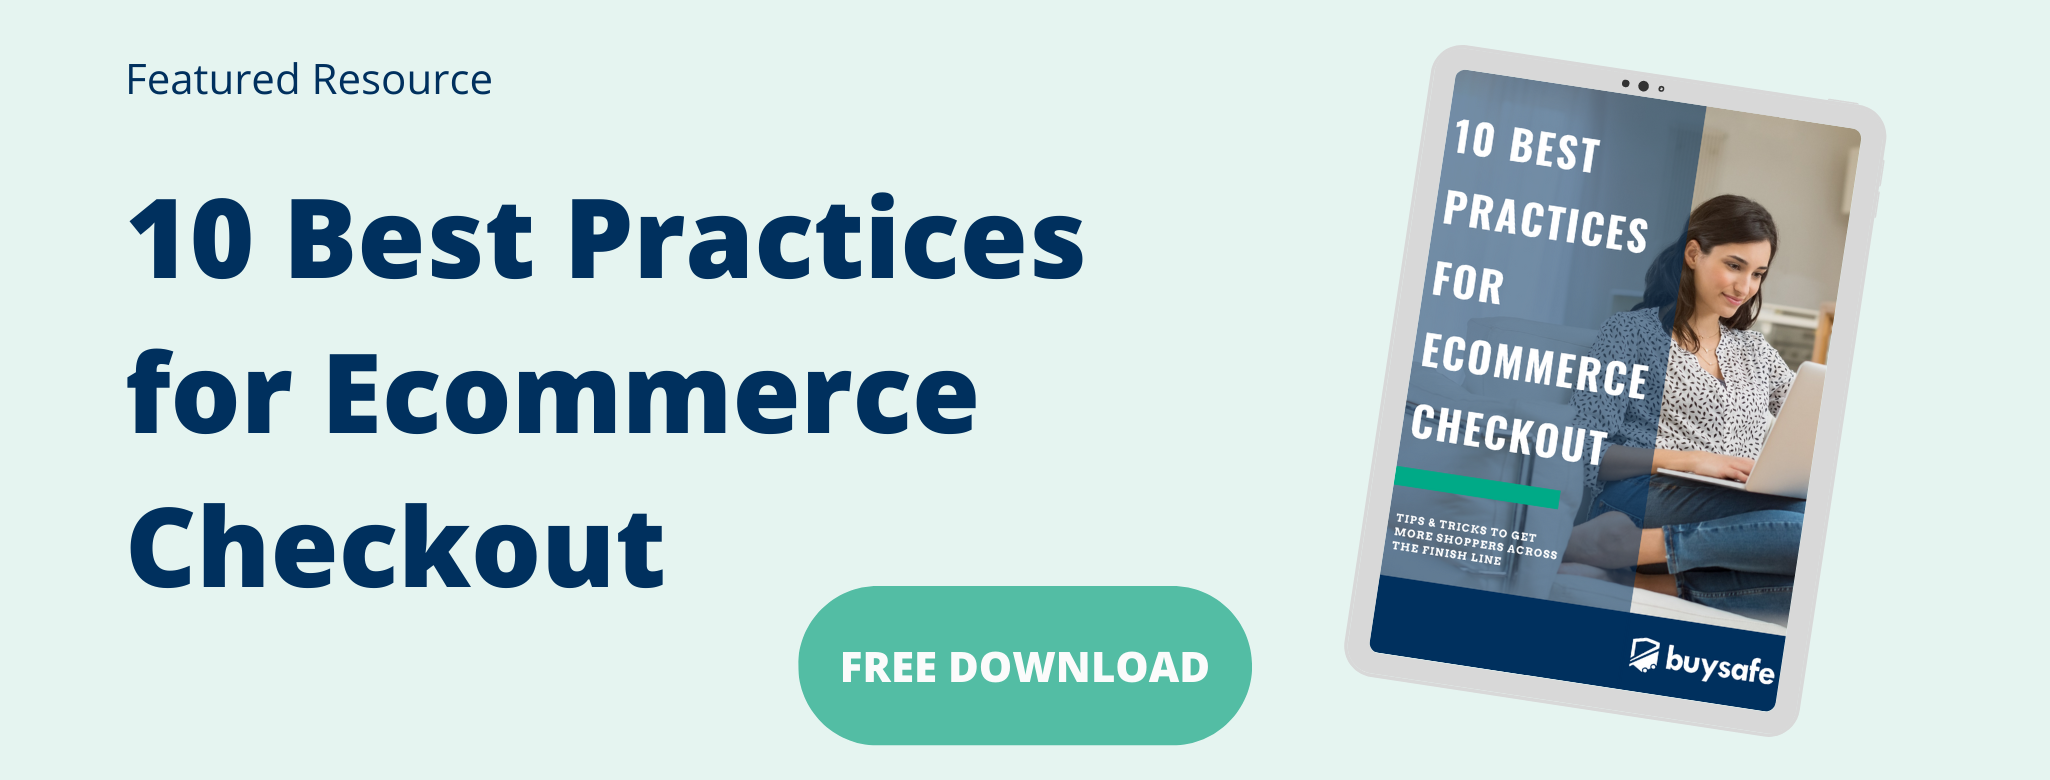 10 Best Practices for Ecommerce Checkout Featured Resource